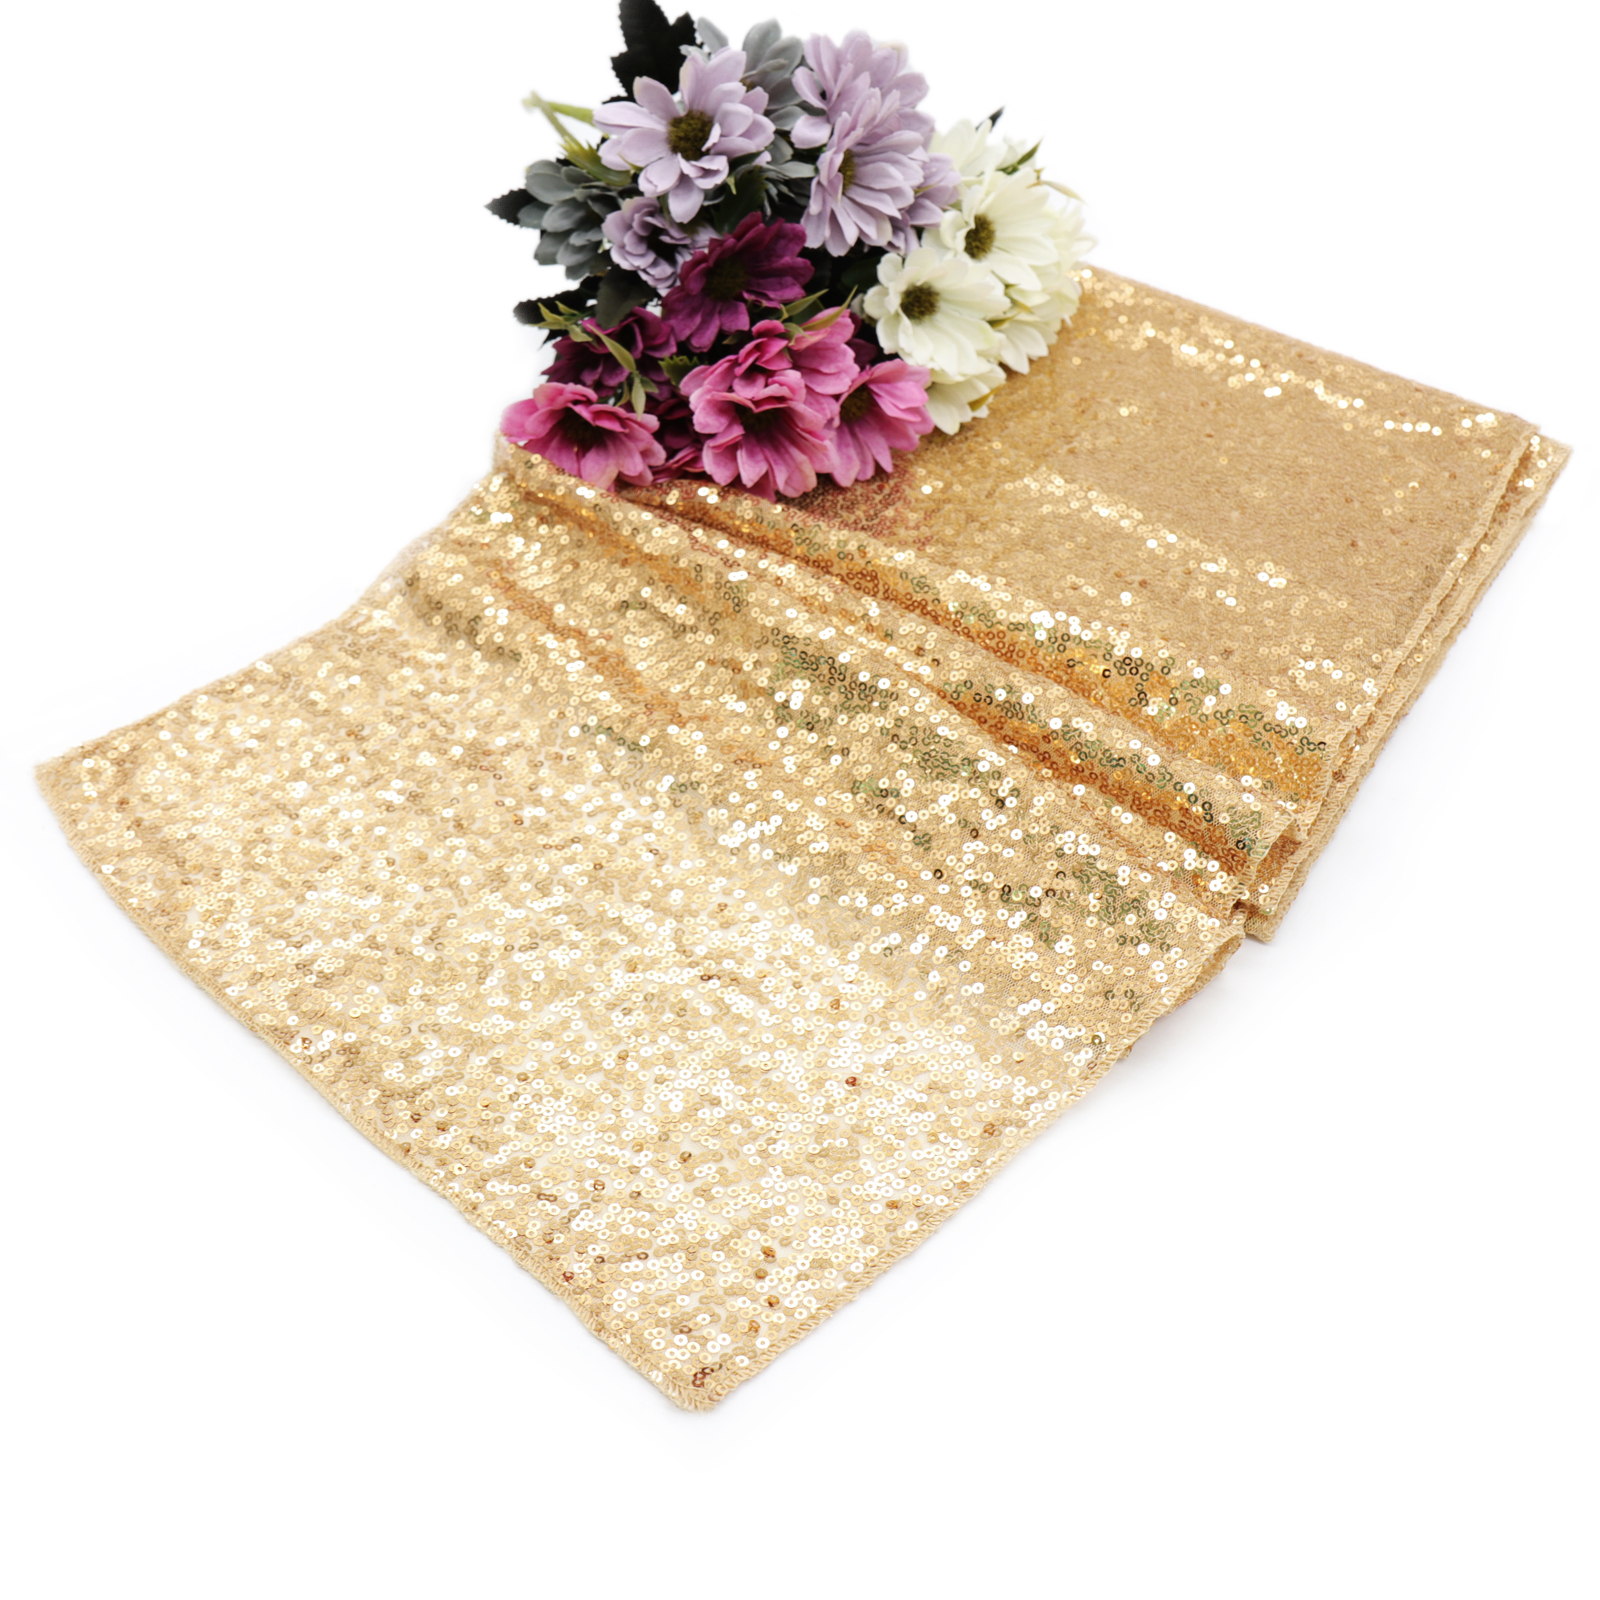 1pcs 30X275cm Rose Gold Champagne Sequin Table Runner Sparkly Wedding Banquet Party Table Runners Home Tablecloth Decoration